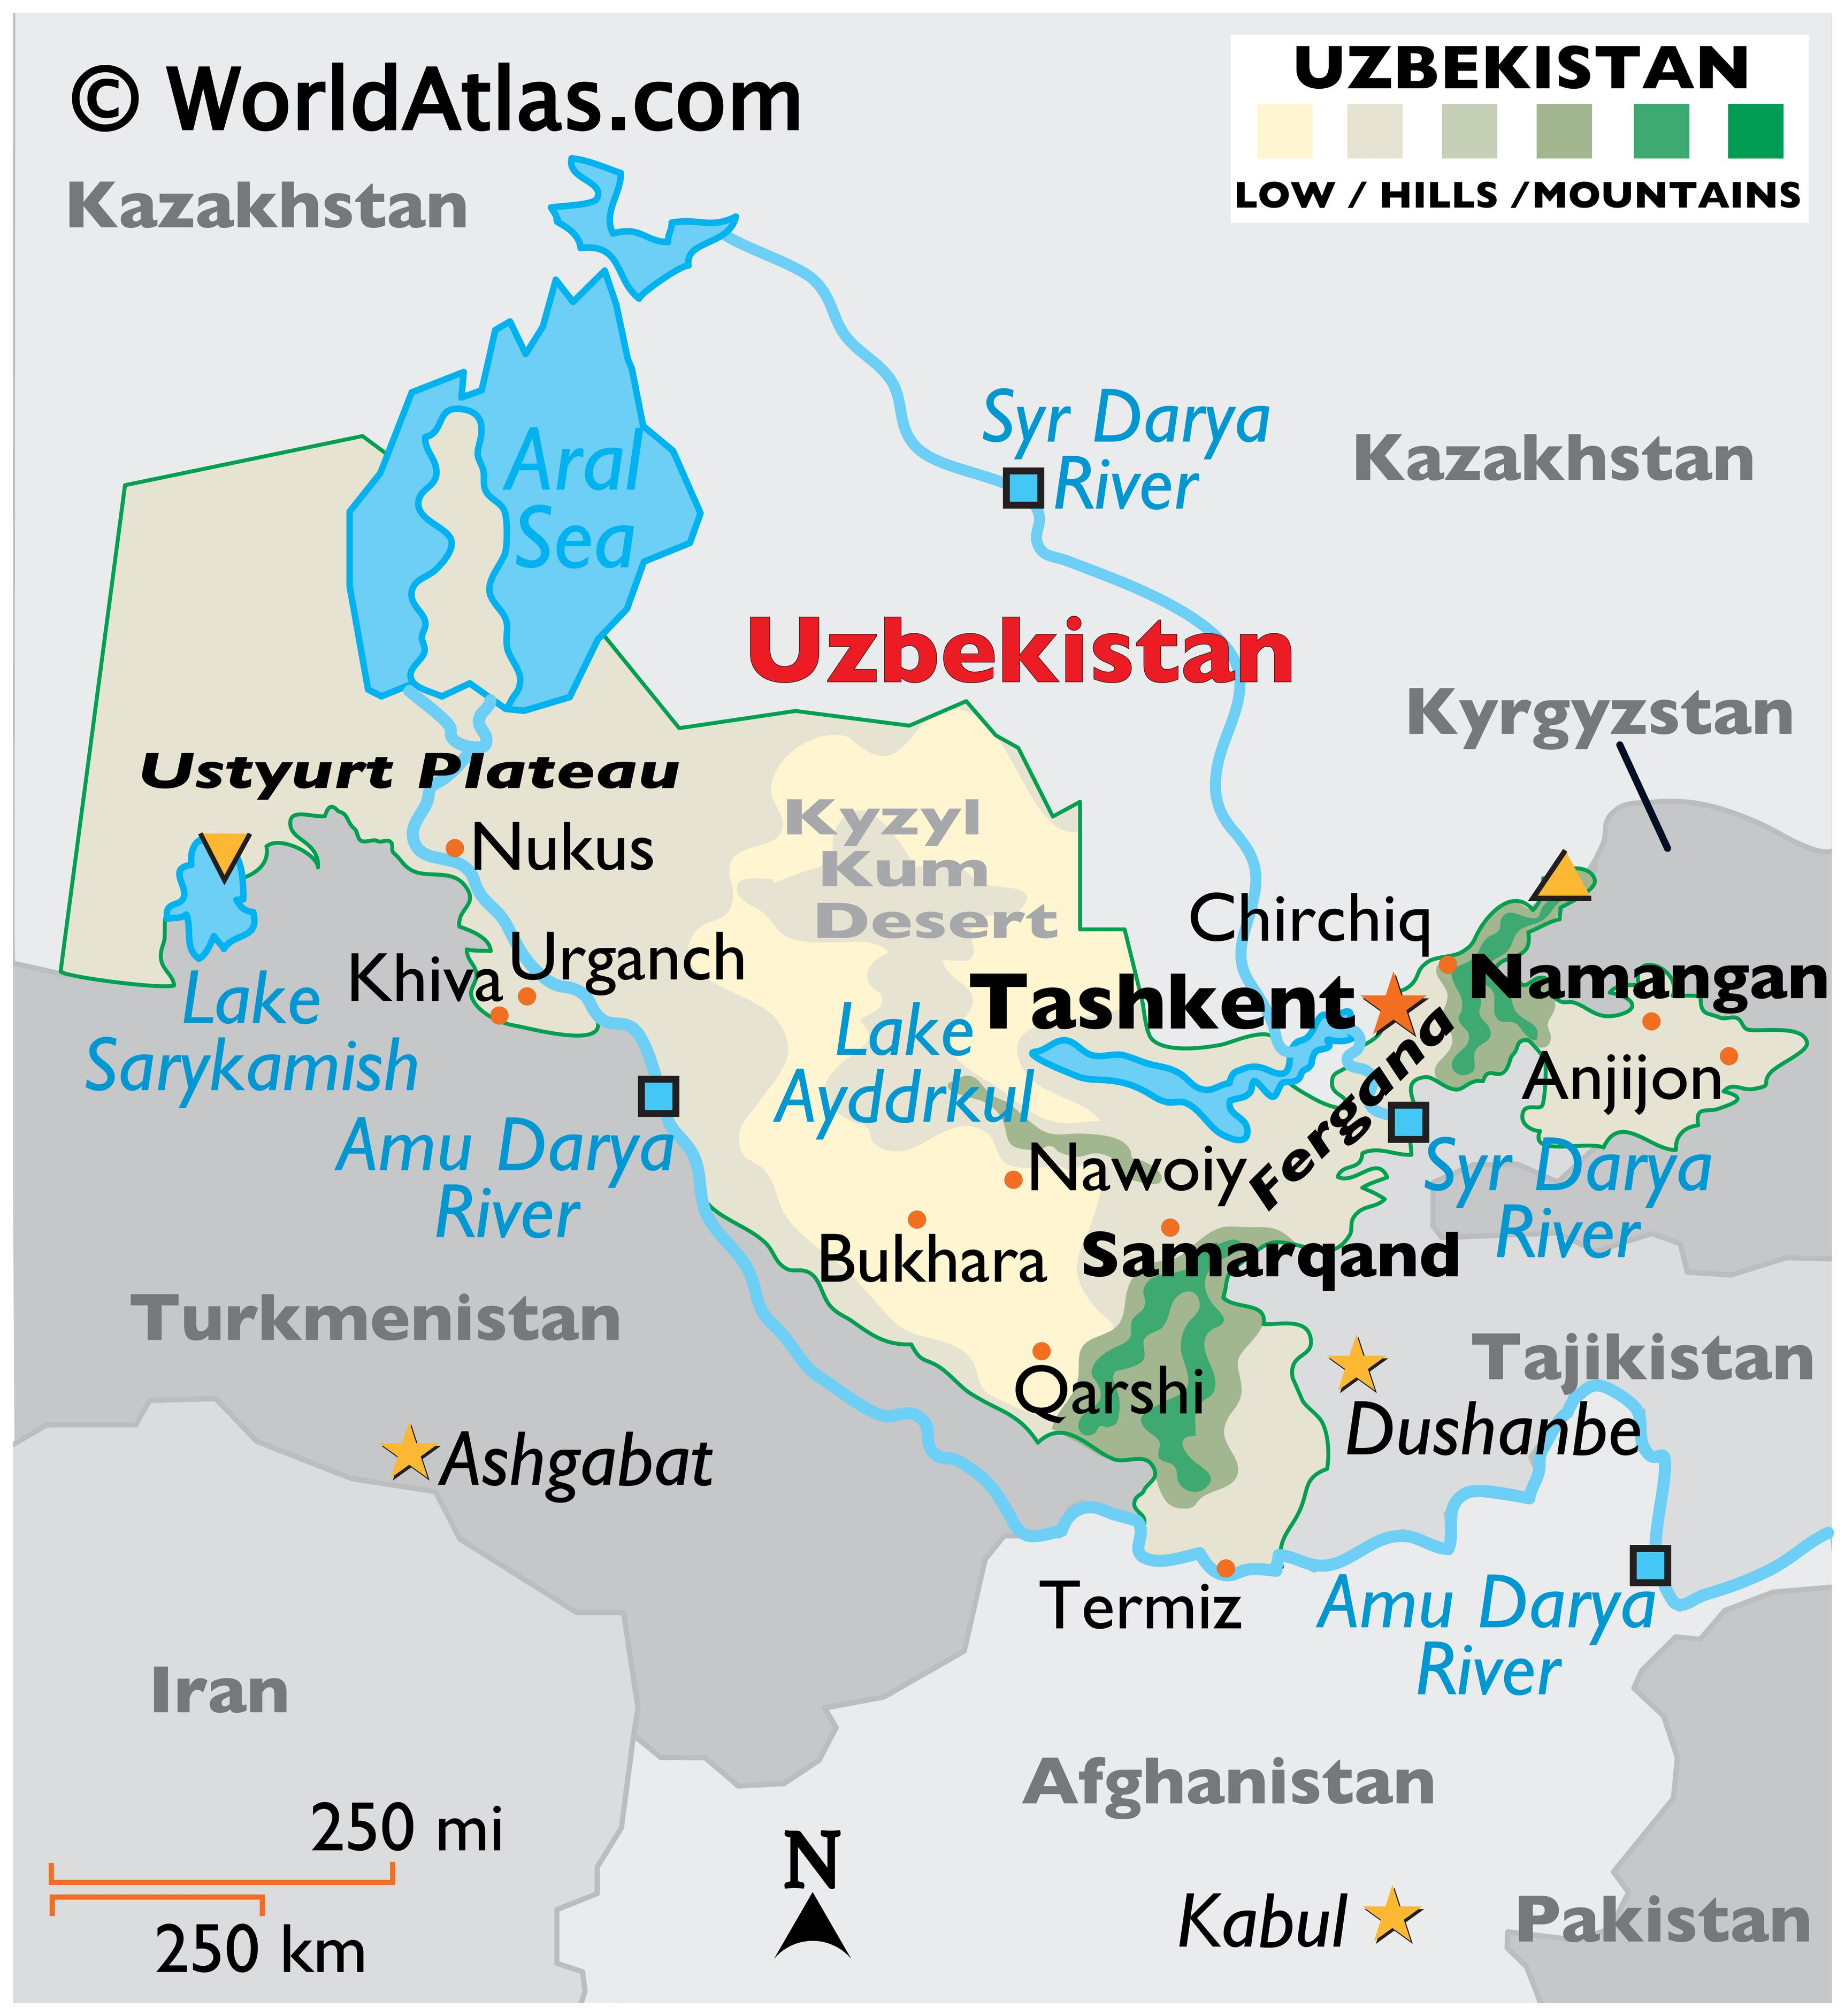 Physical Map of Uzbekistan with state boundaries, relief, major rivers, lakes, highland areas, highest peak, important cities, and more.